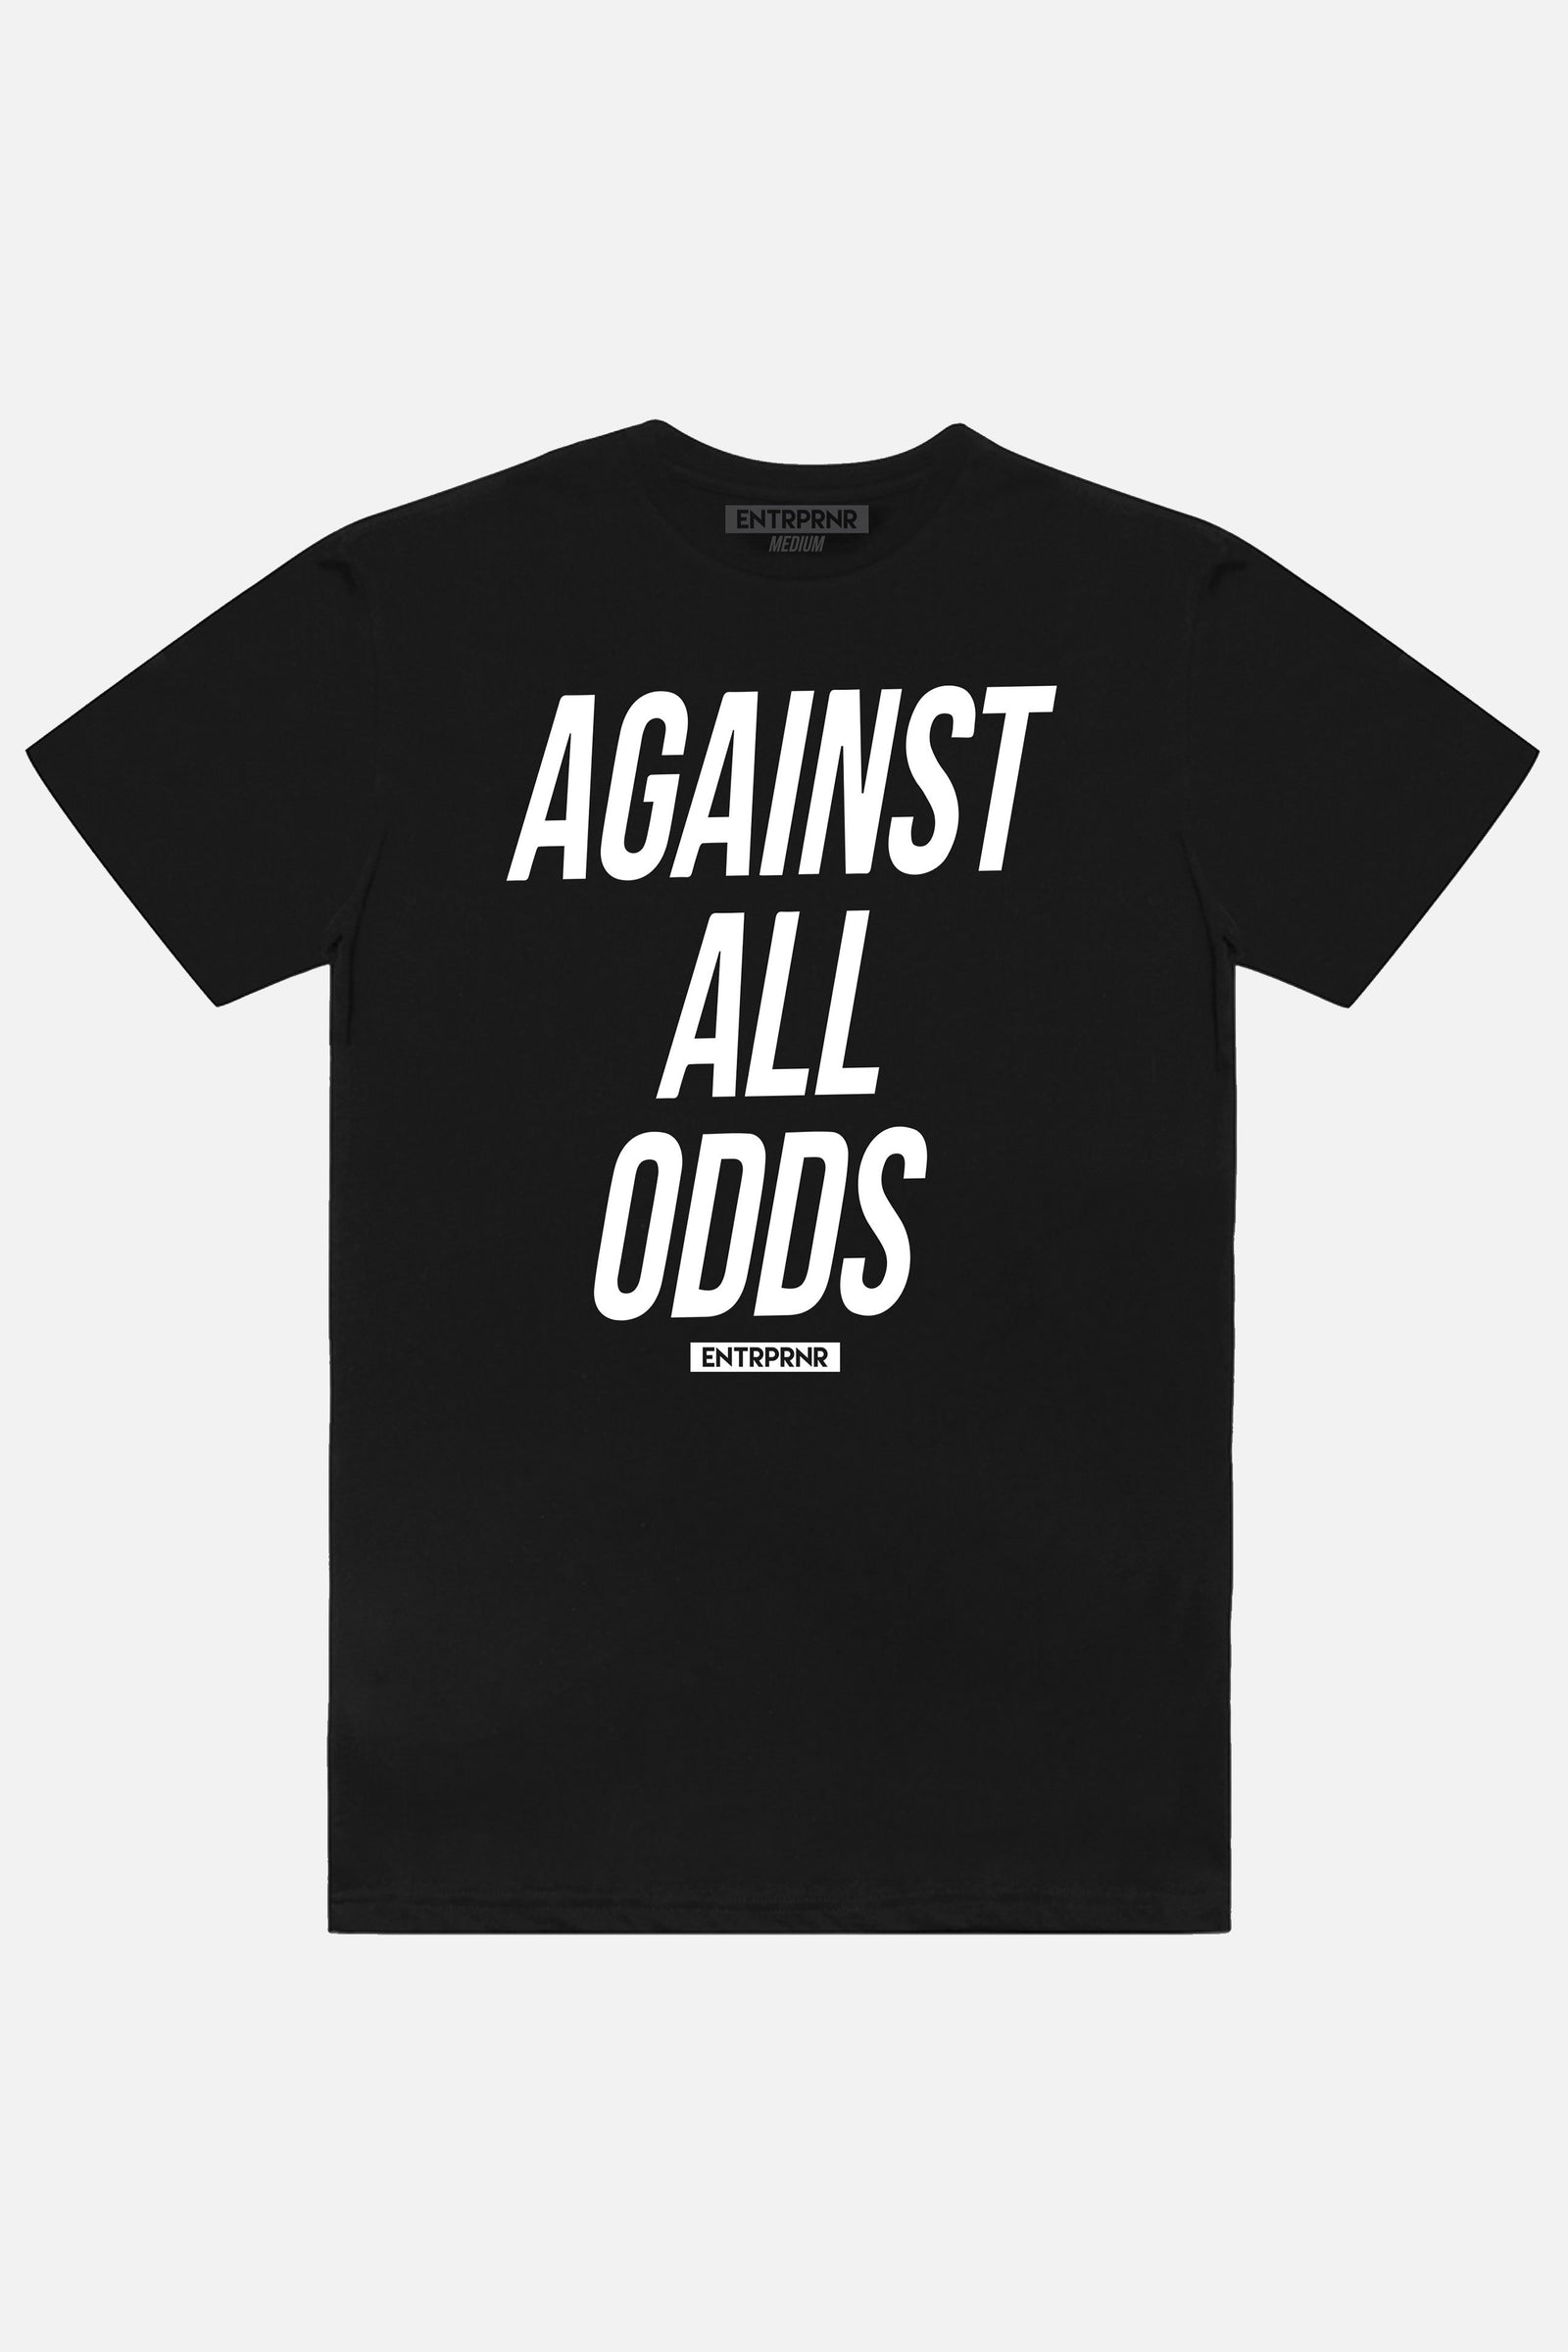 Against All Odds ENTRPRNR Tee - Black - ENTRPRNR® | The Entrepreneur's Clothing Brand. | Stagnancy is the Enemy. Action is King.